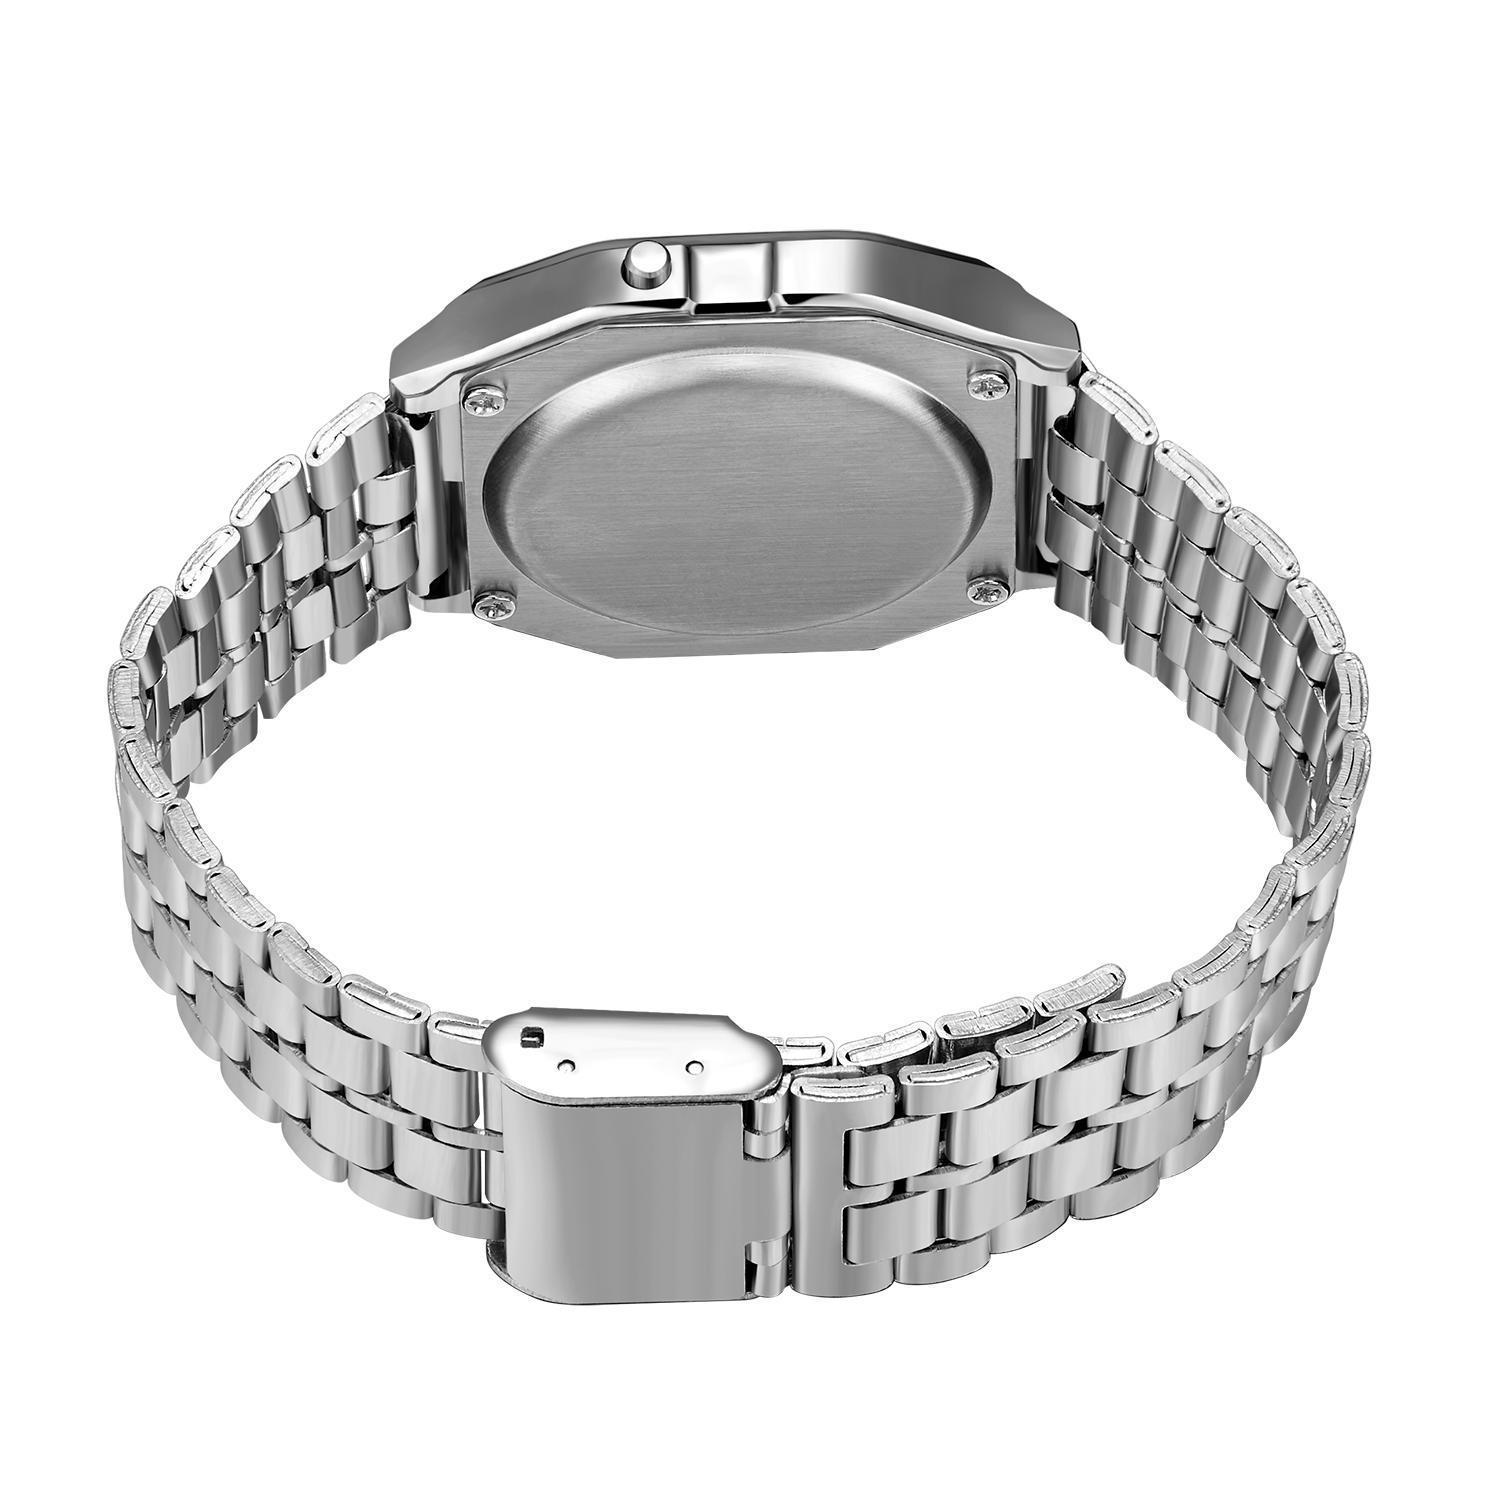 H8fb025ad459848bf9fe09a169b9832665 - F91W Watches Steel Strap Watch Women Men Business Clock Multifunction LED Digtal Sports Wrist Watch Electronic Clock